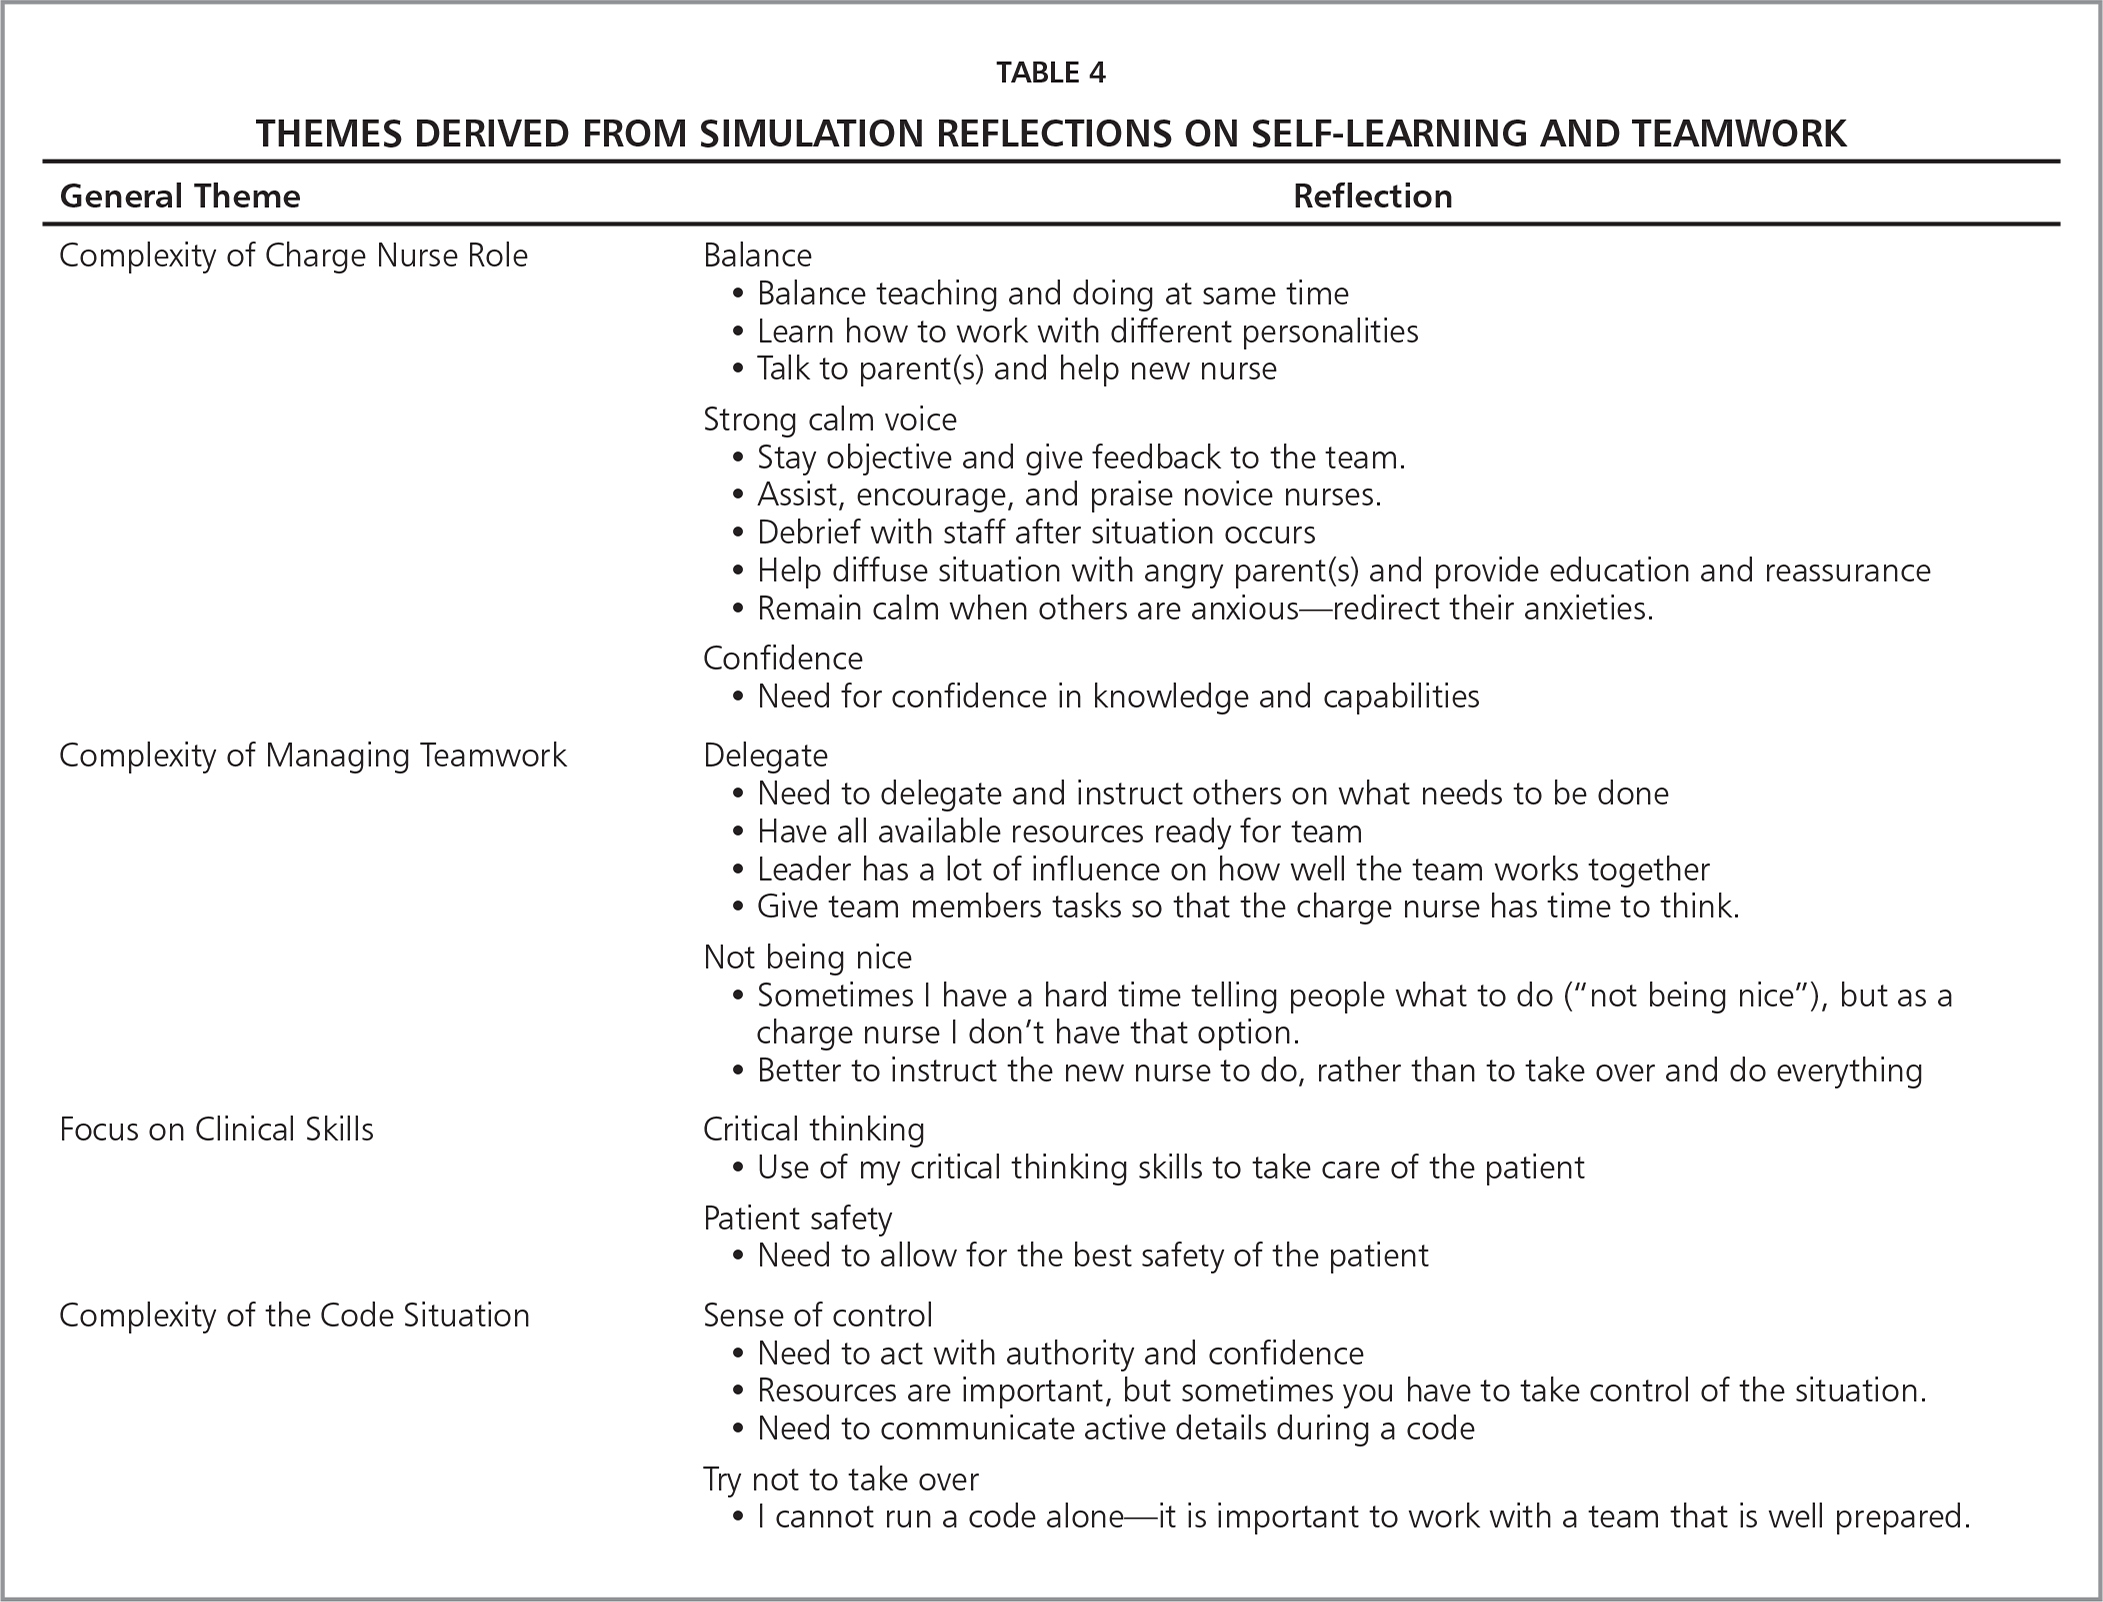 Themes Derived from Simulation Reflections on Self-Learning and Teamwork